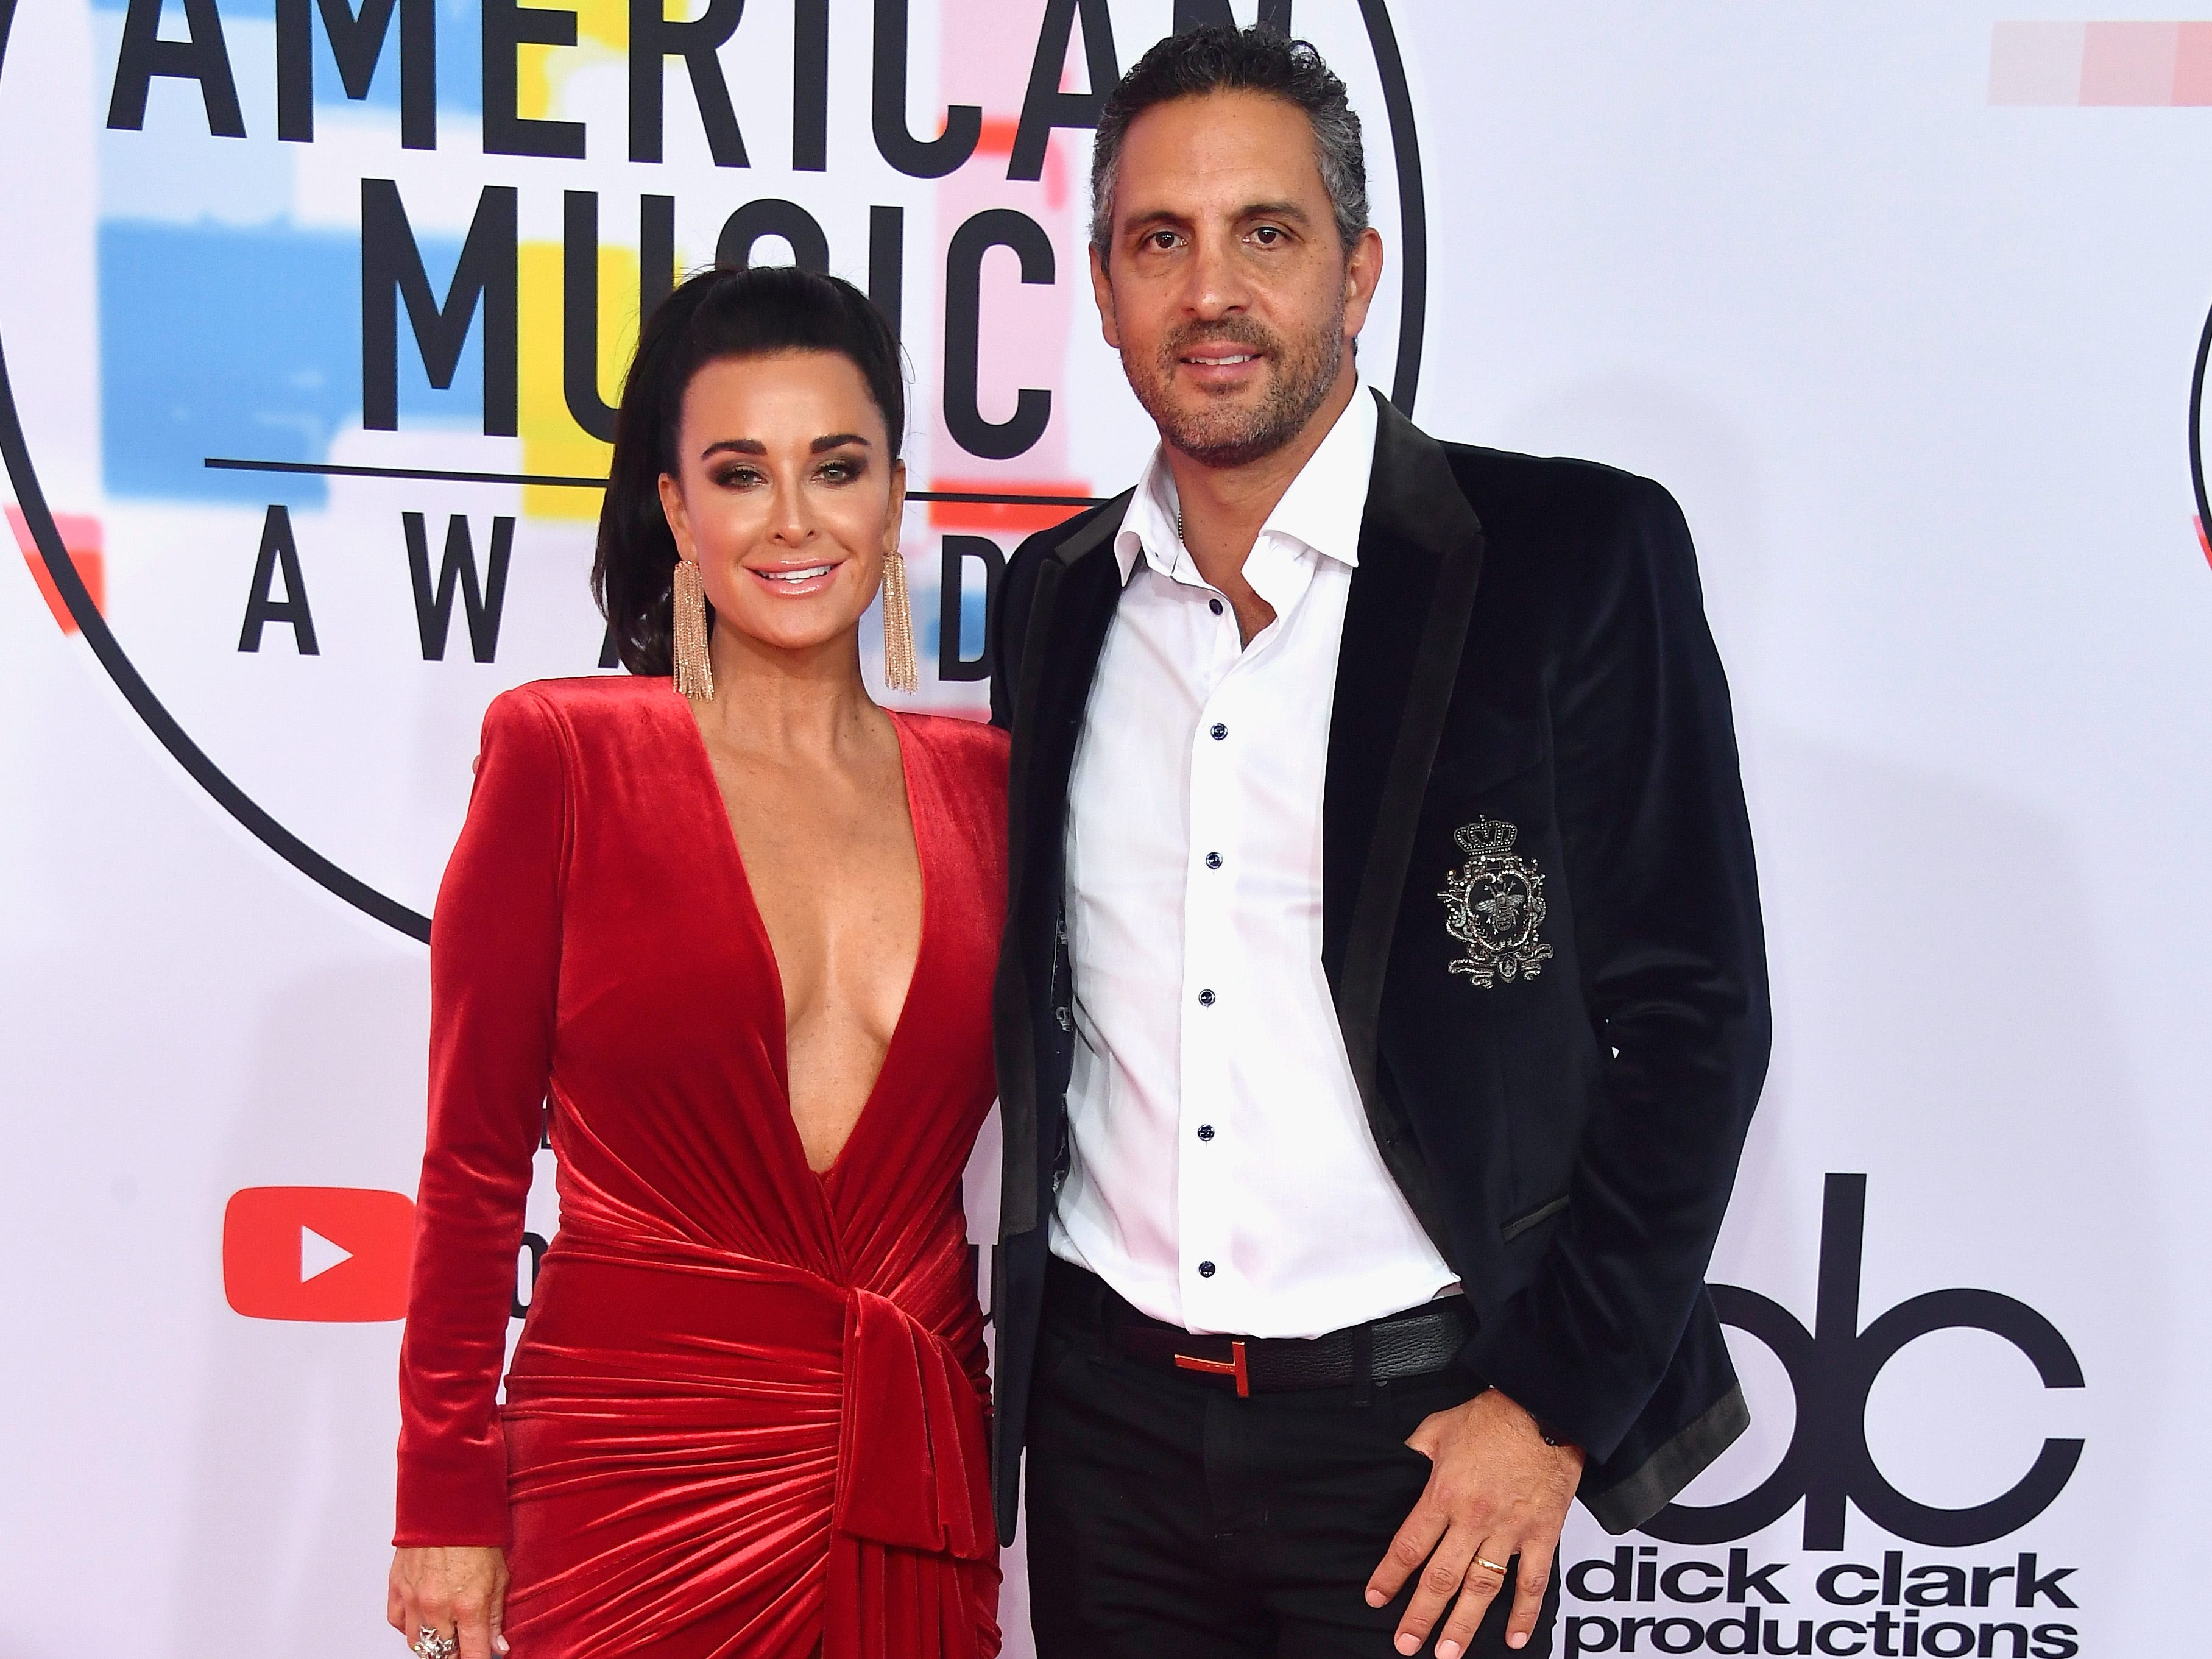 Kyle Richards, left, and Mauricio Umansky